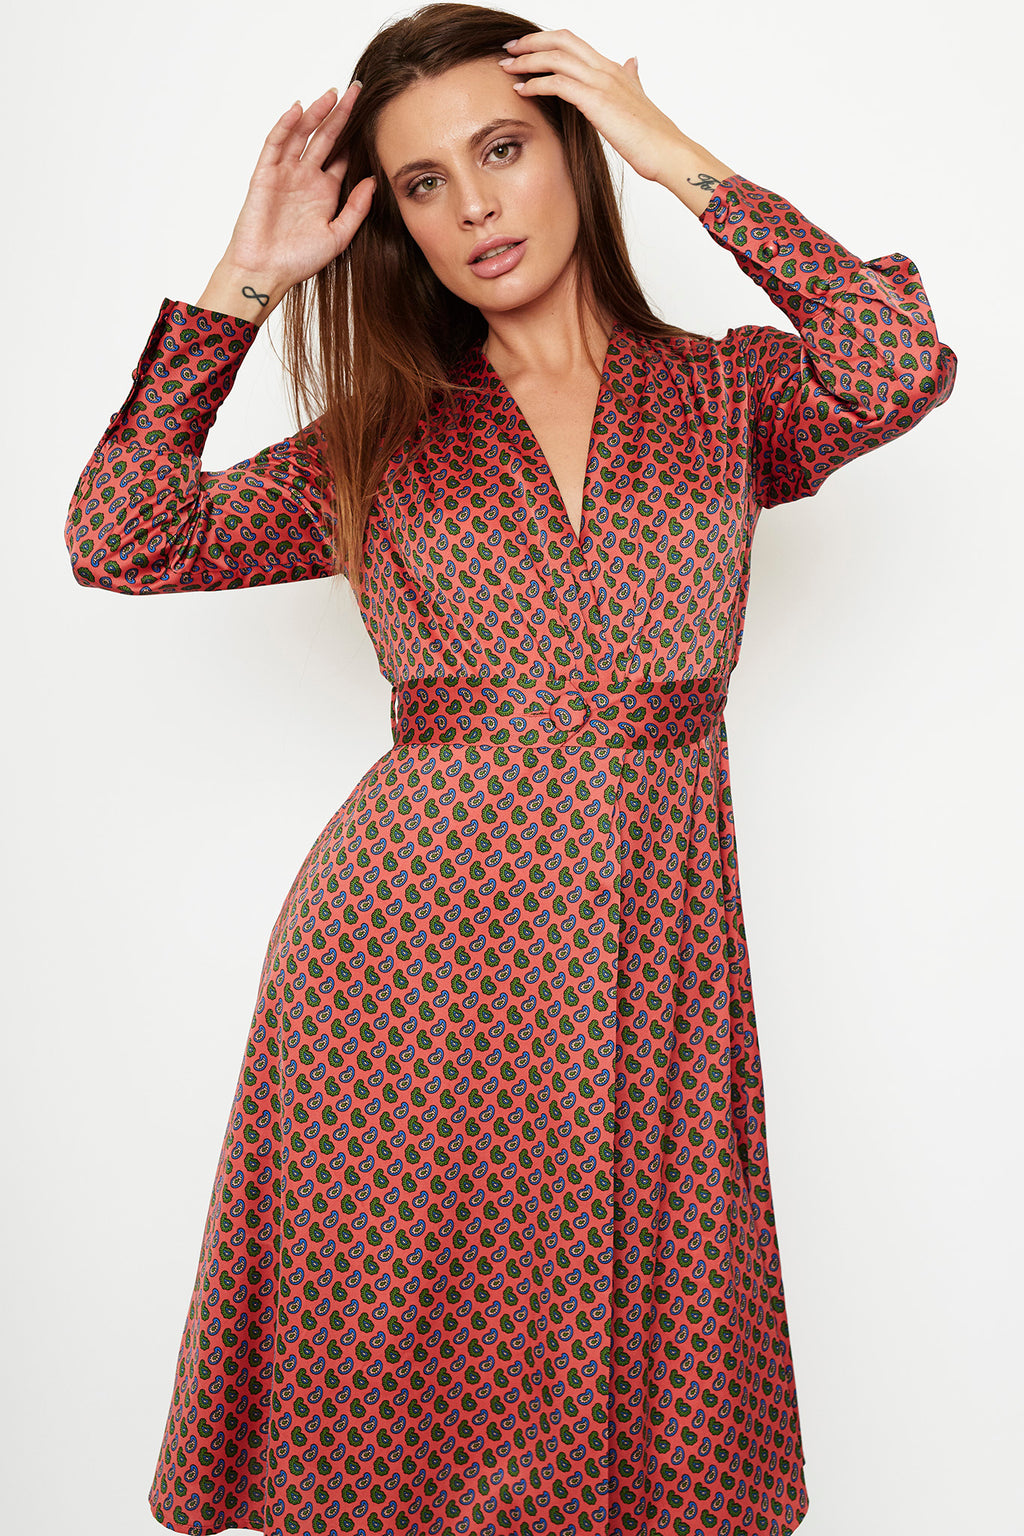 1 VESTIDO WRAP DRESS  EN SATEN ESTAMPADO PAISLEY CORAL